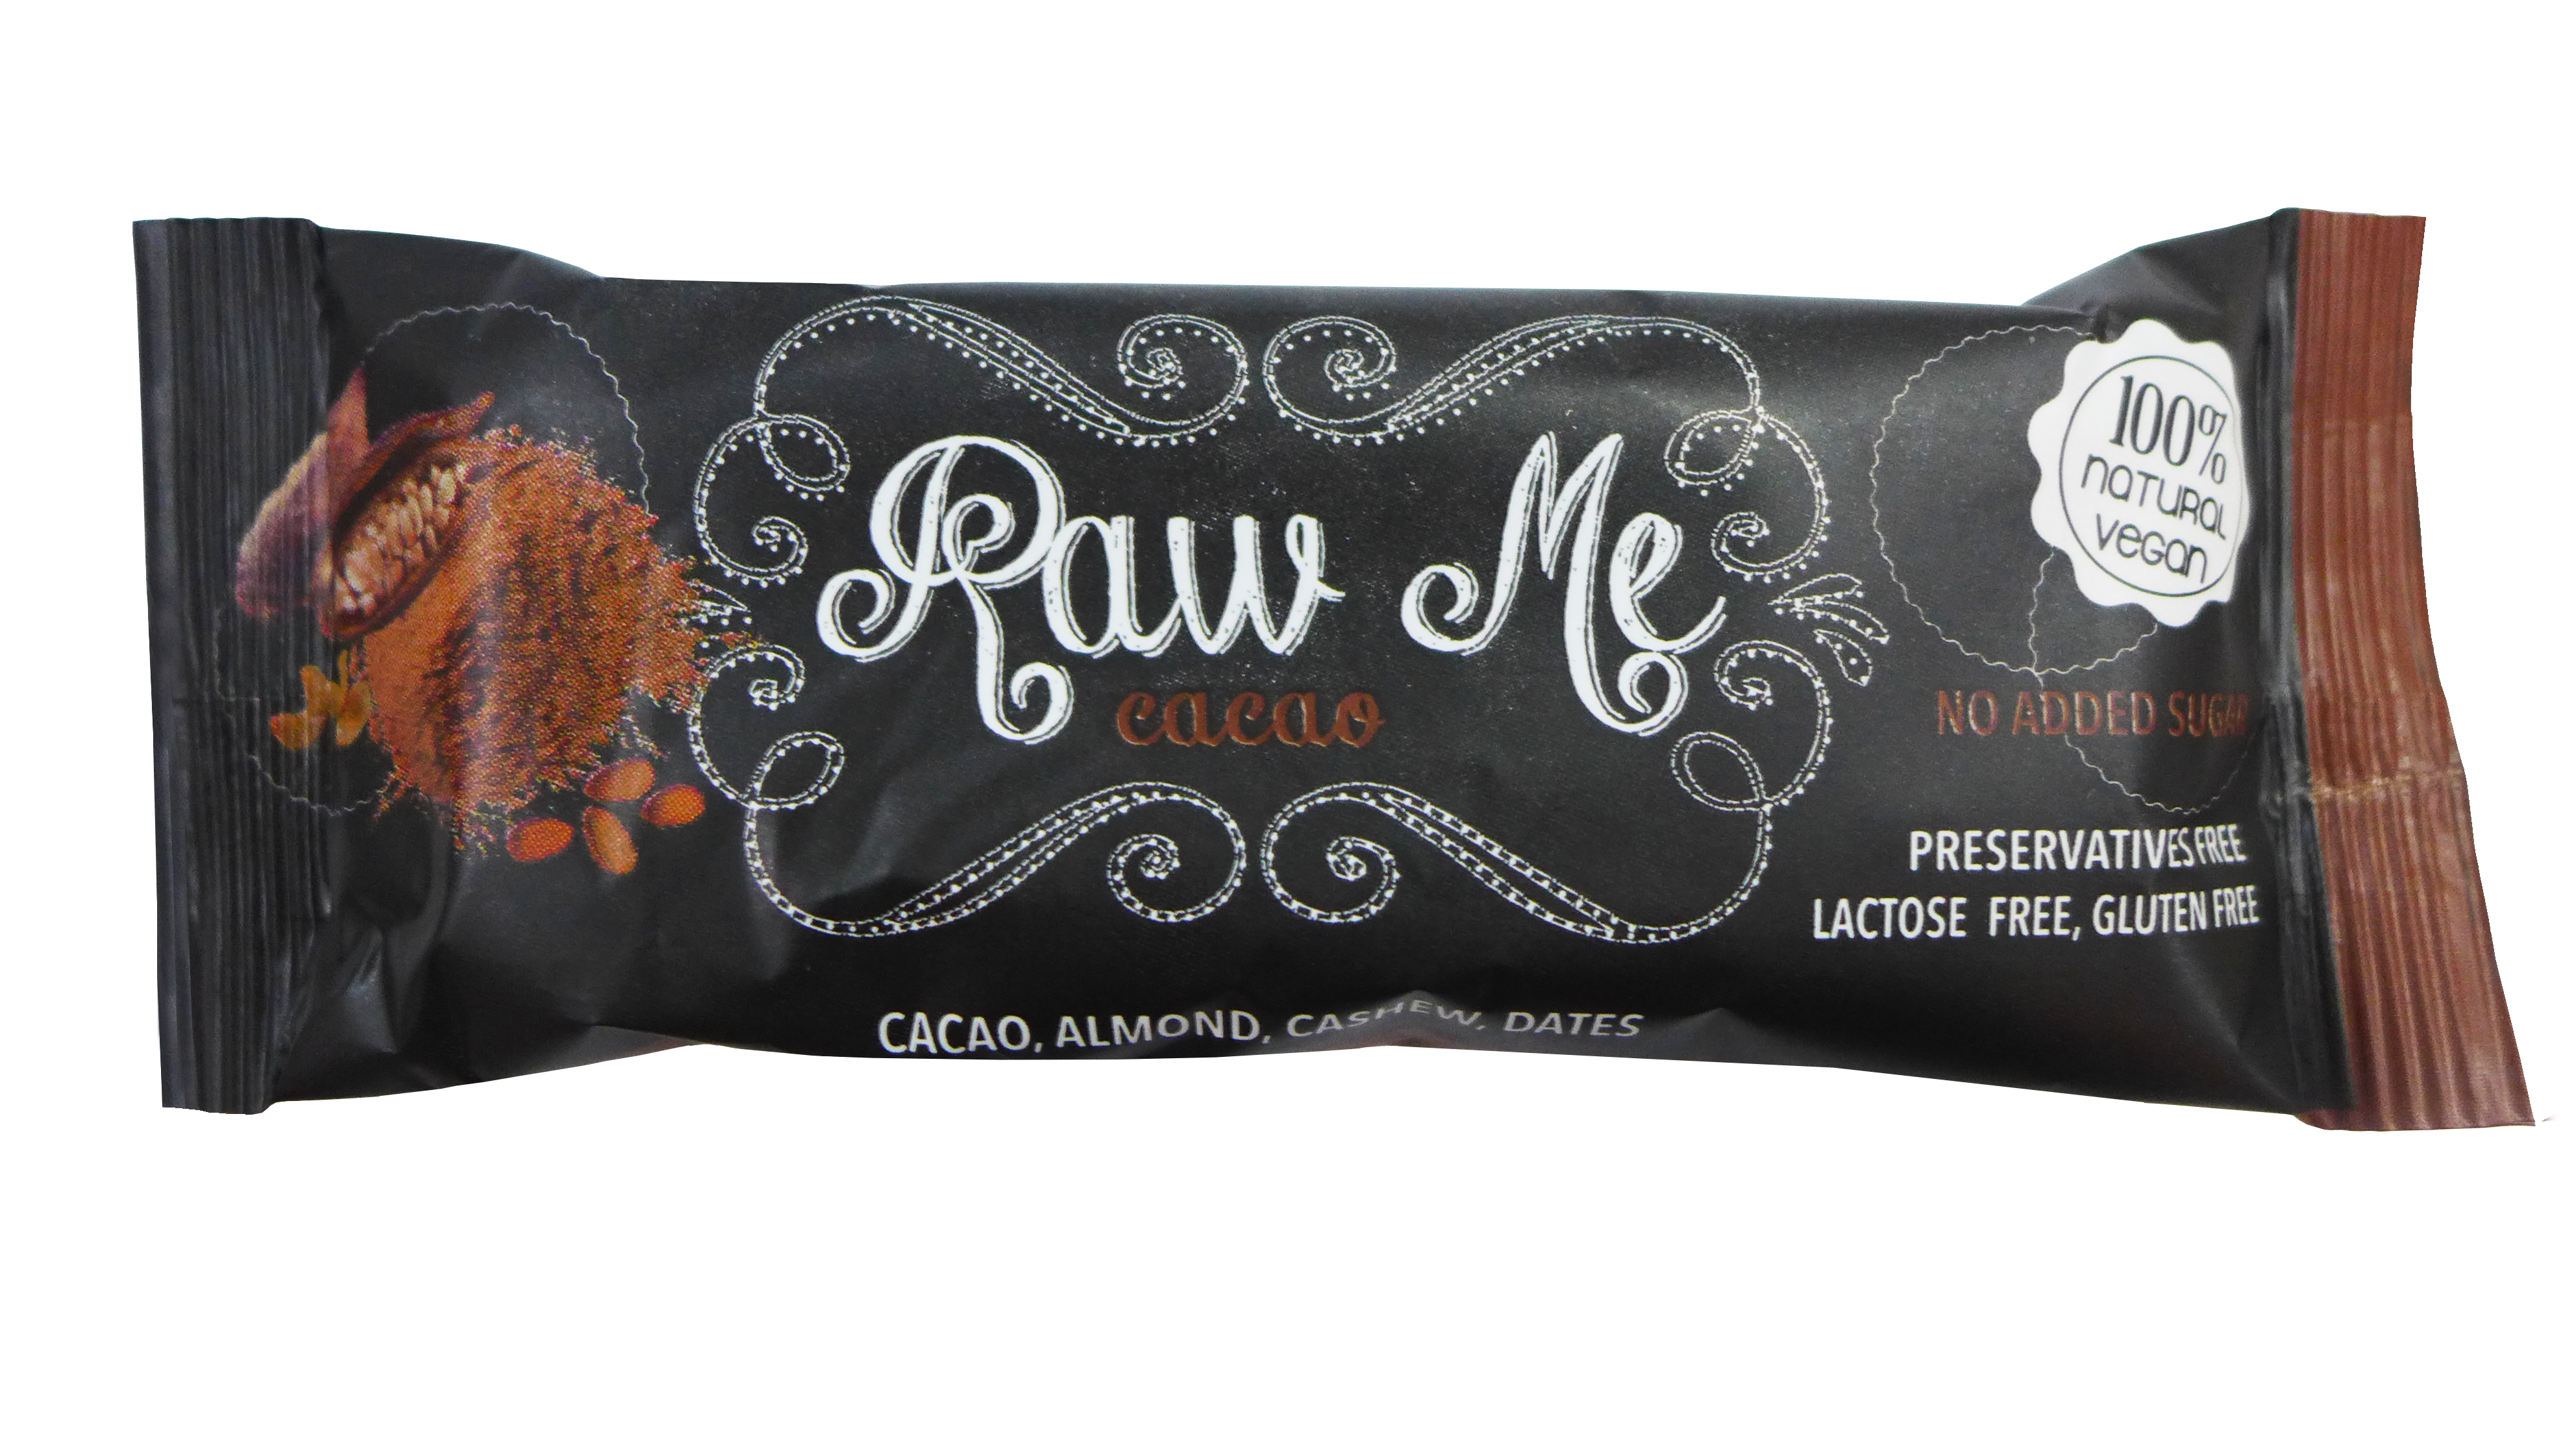 Raw Me cacao